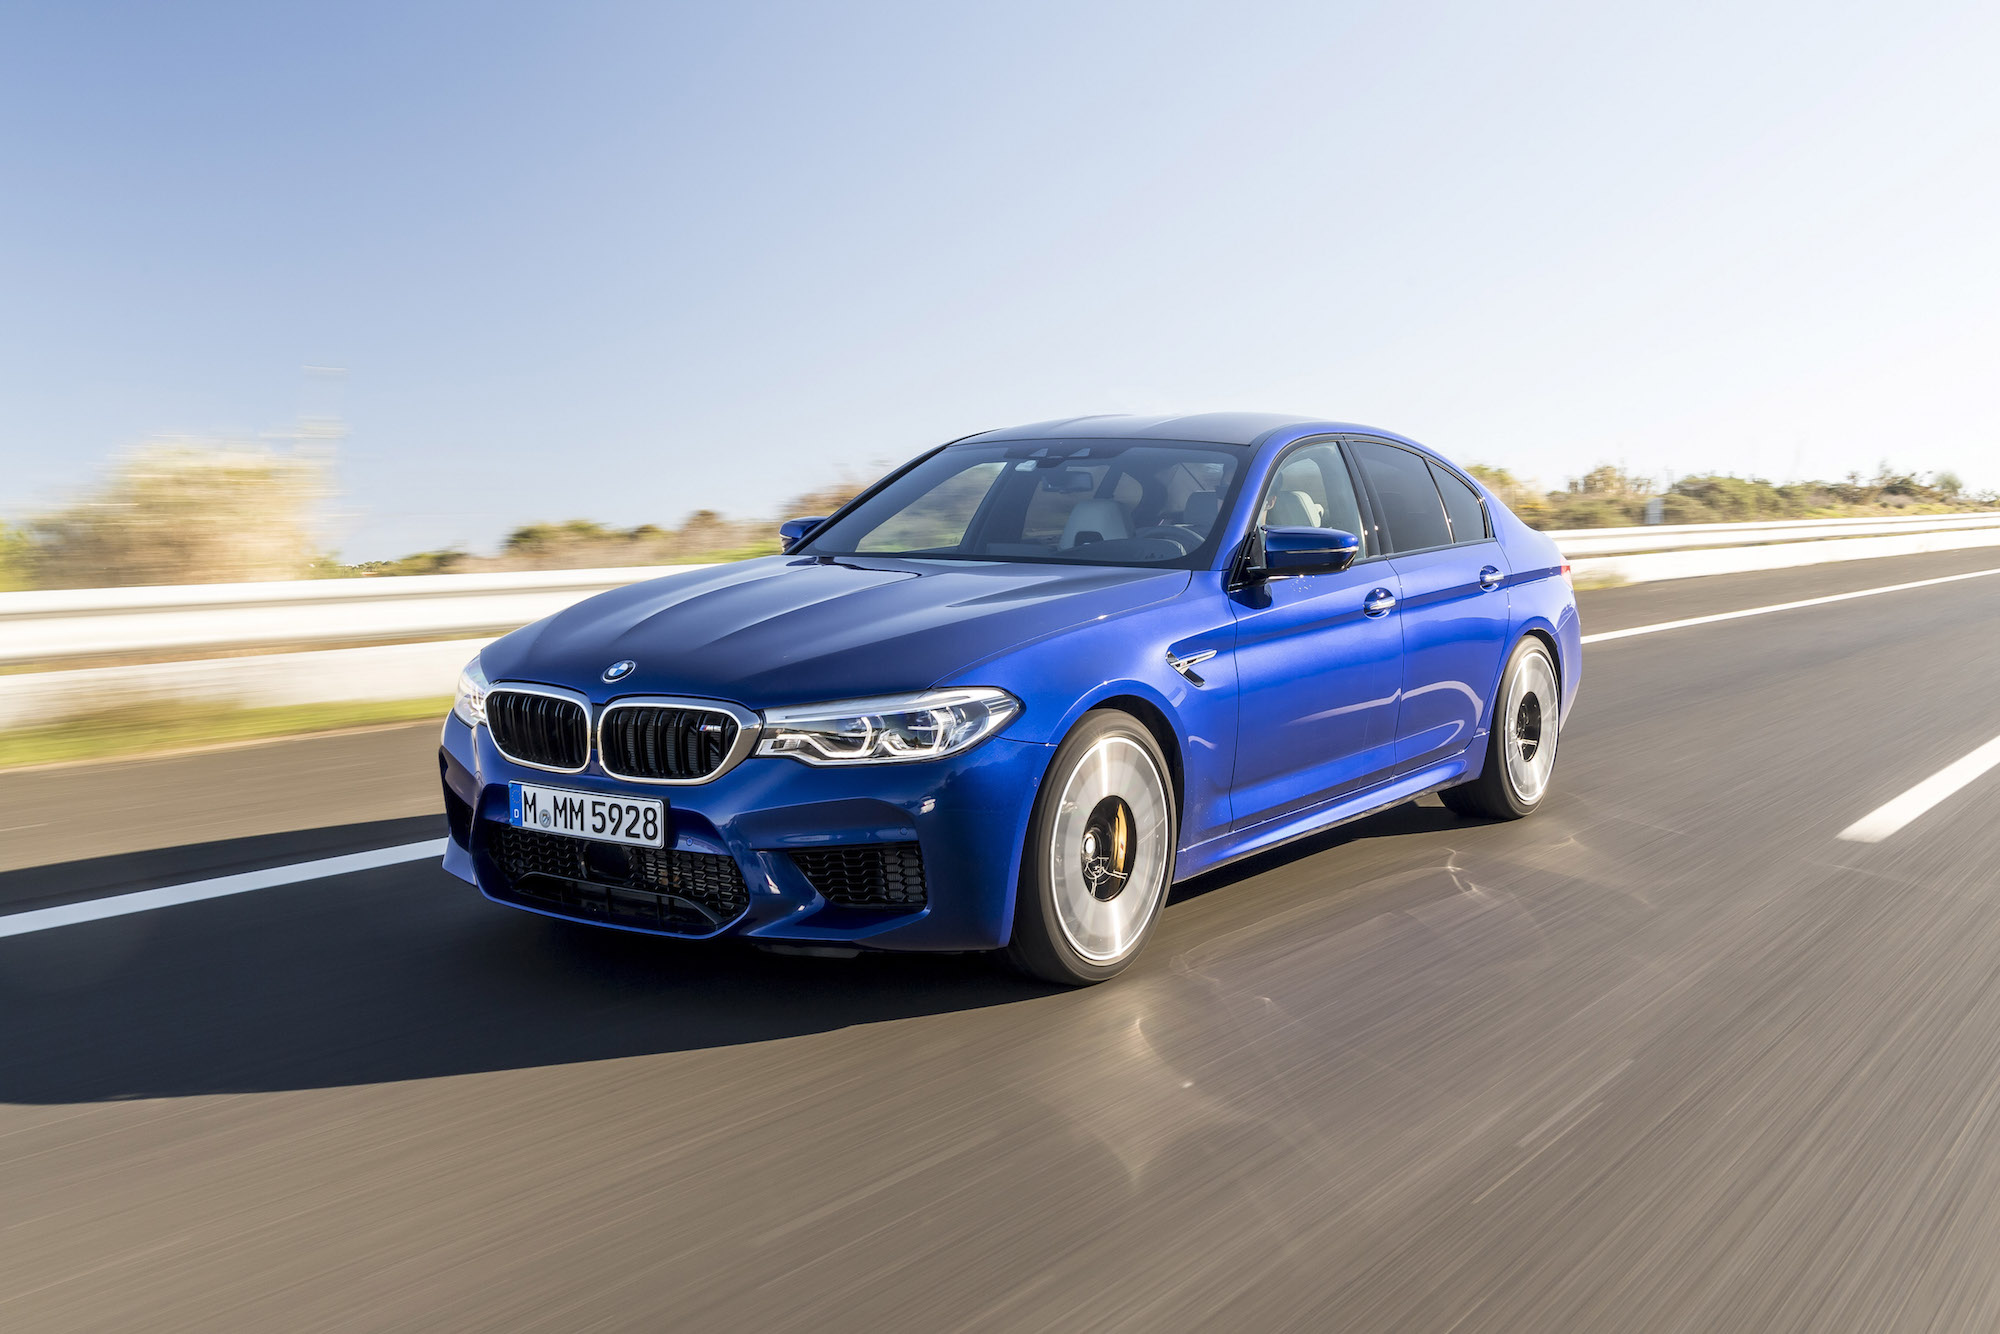 2018 BMW M5 F90 first drive review canada